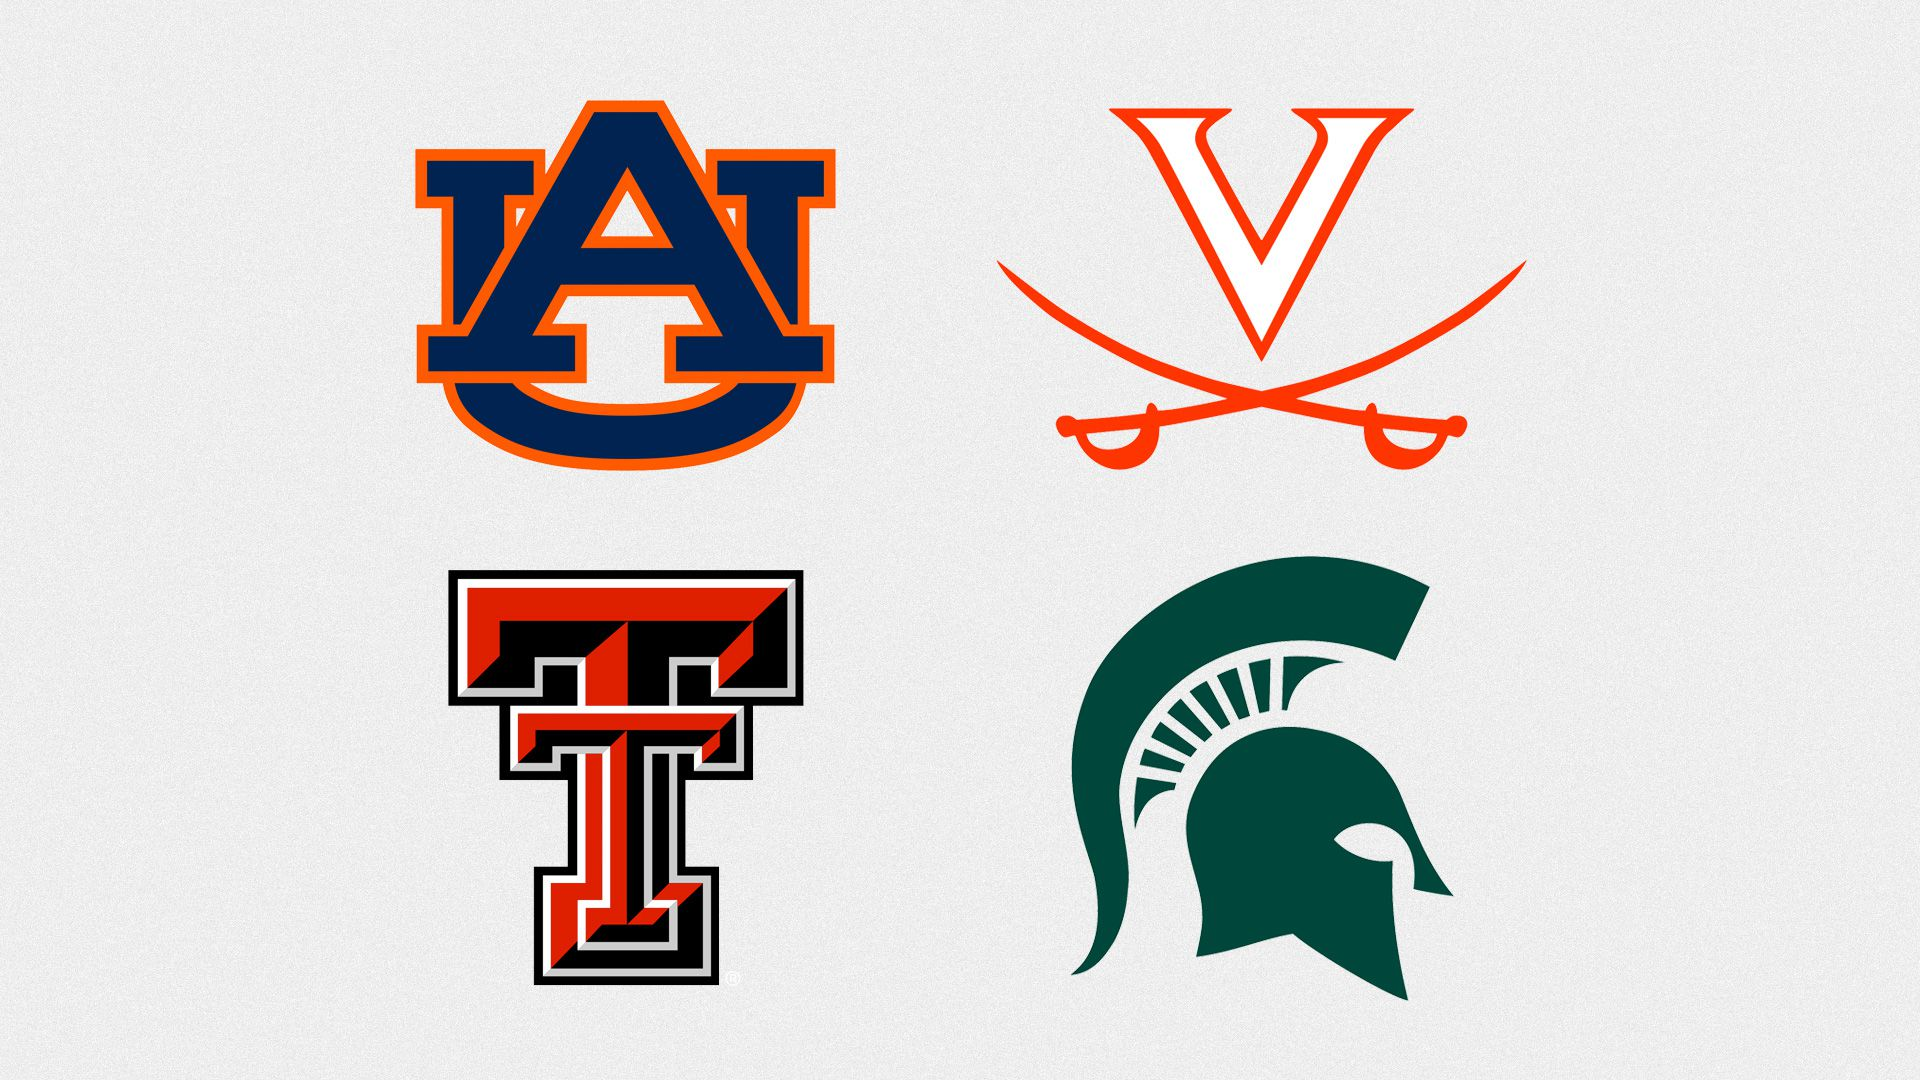 The logos for the Final Four teams